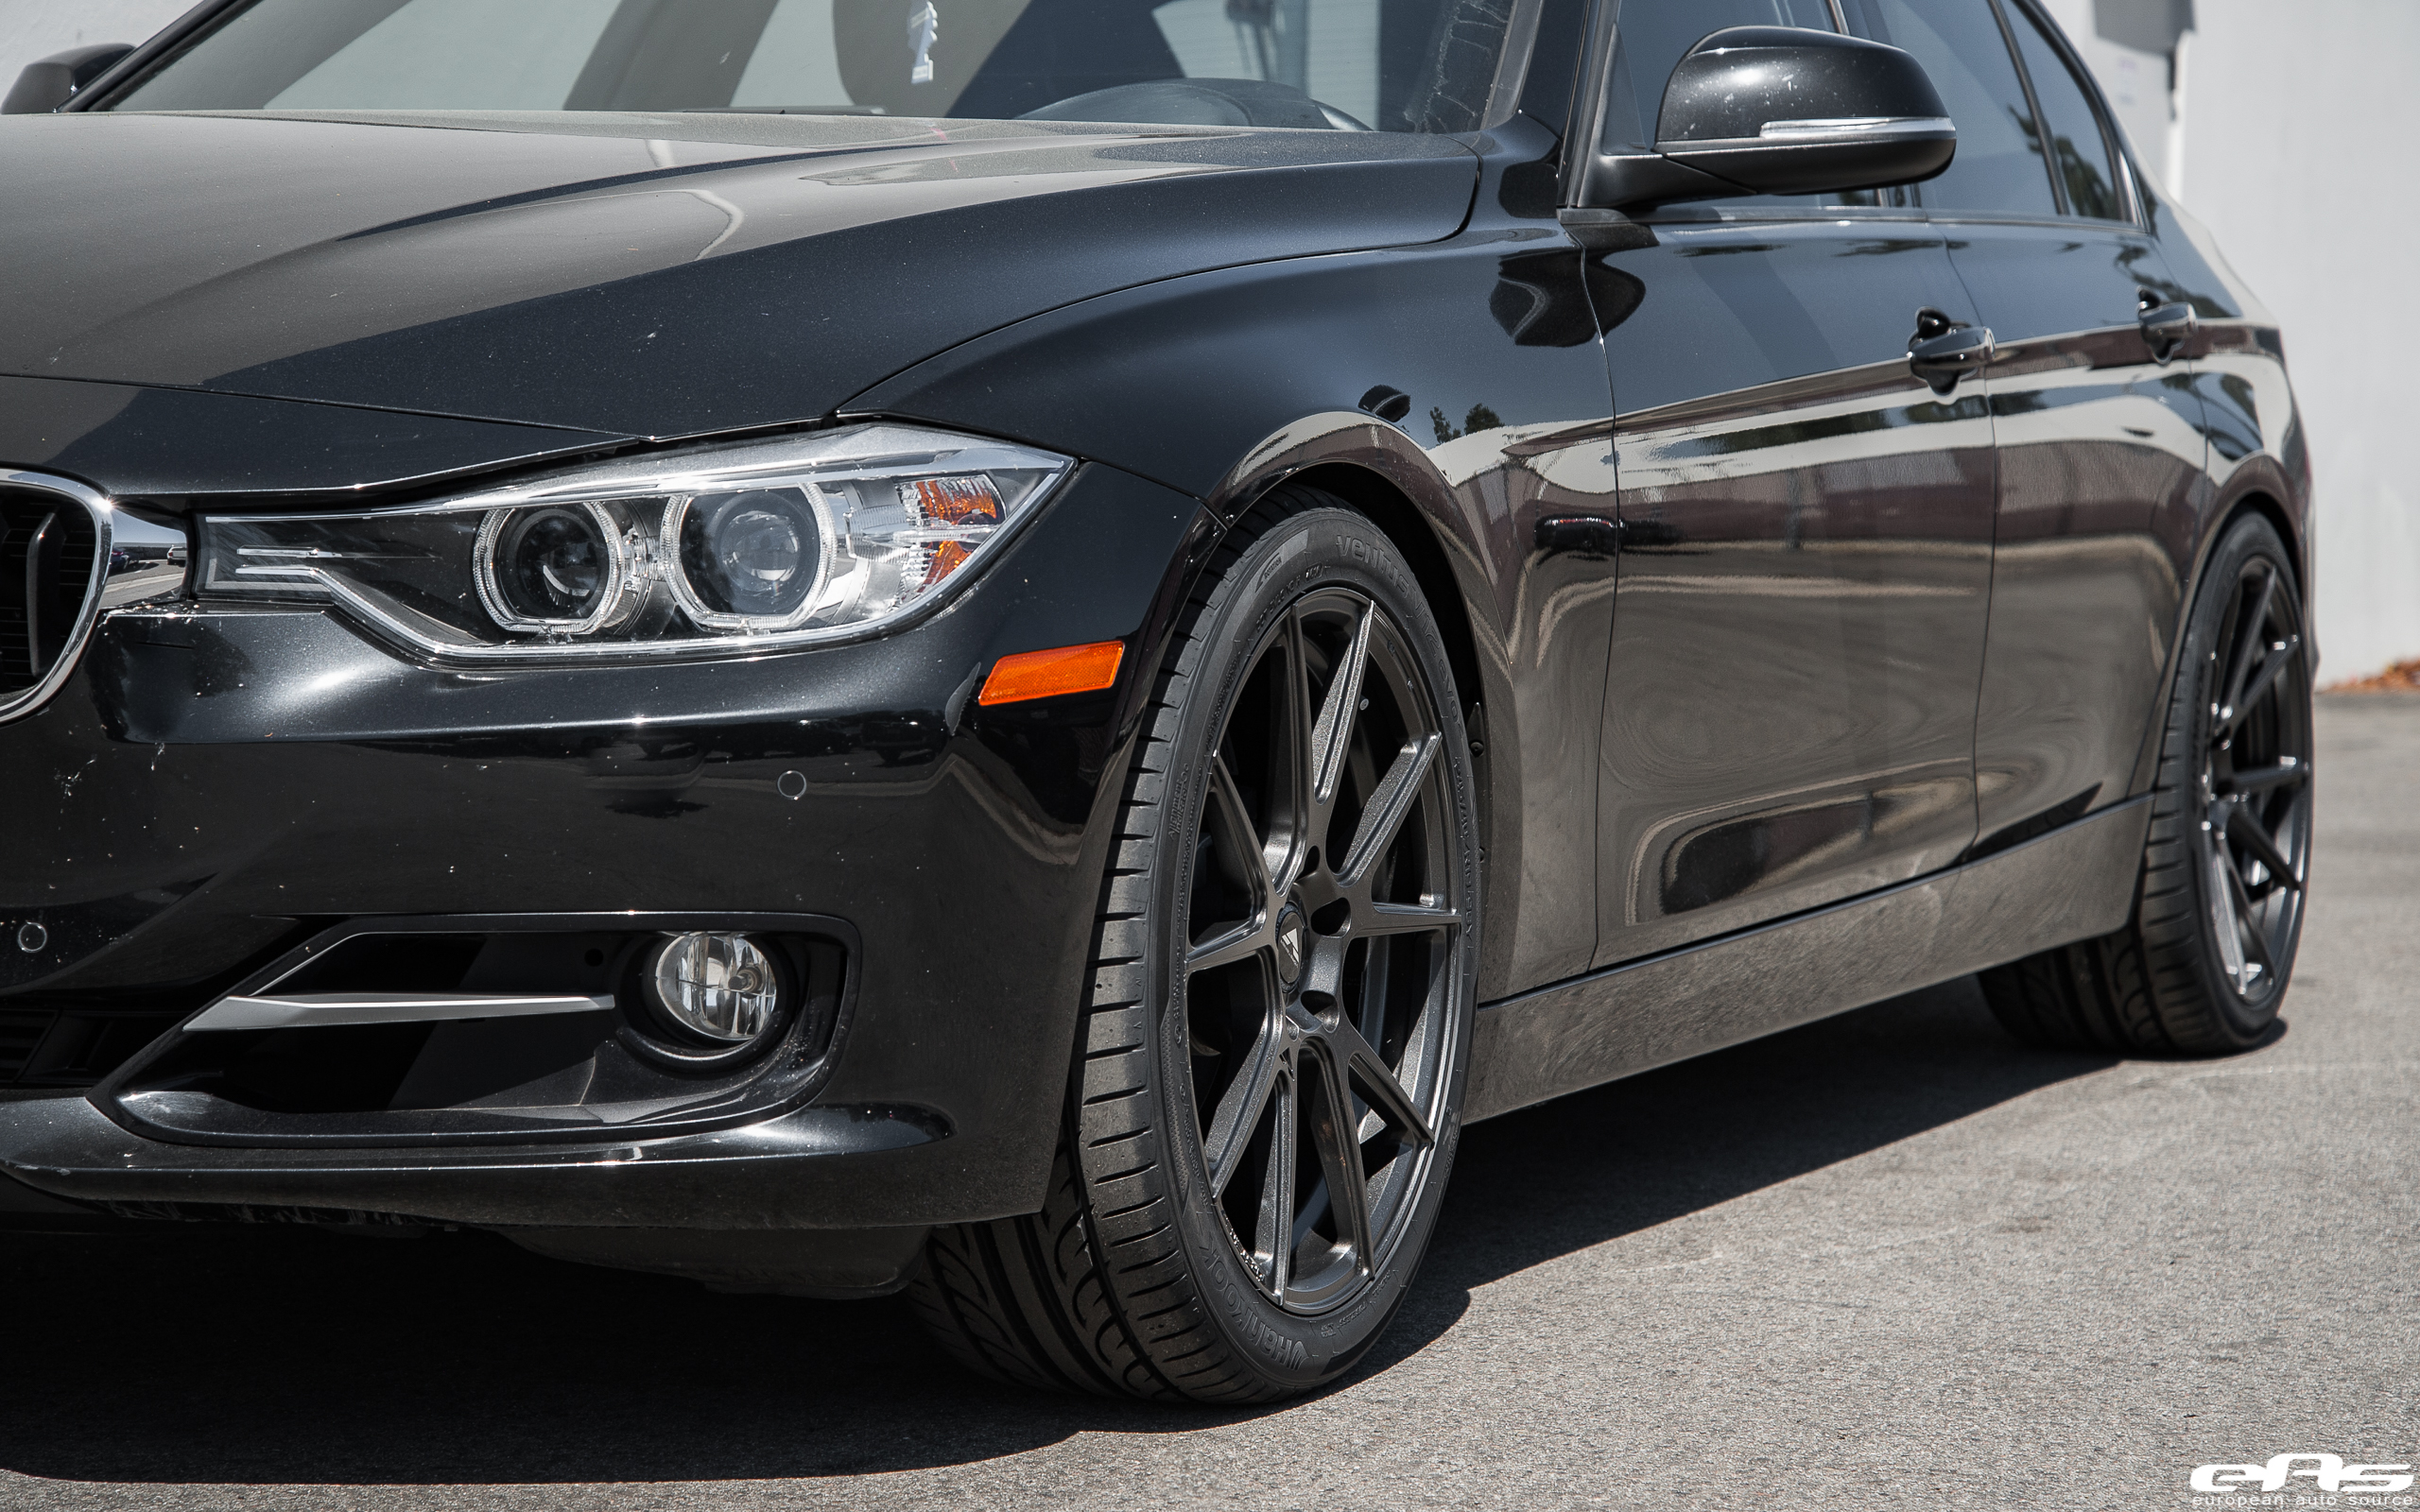 Black Sapphire Metallic Bmw 328i Gets Vorsteiner V Ff 106 Wheels